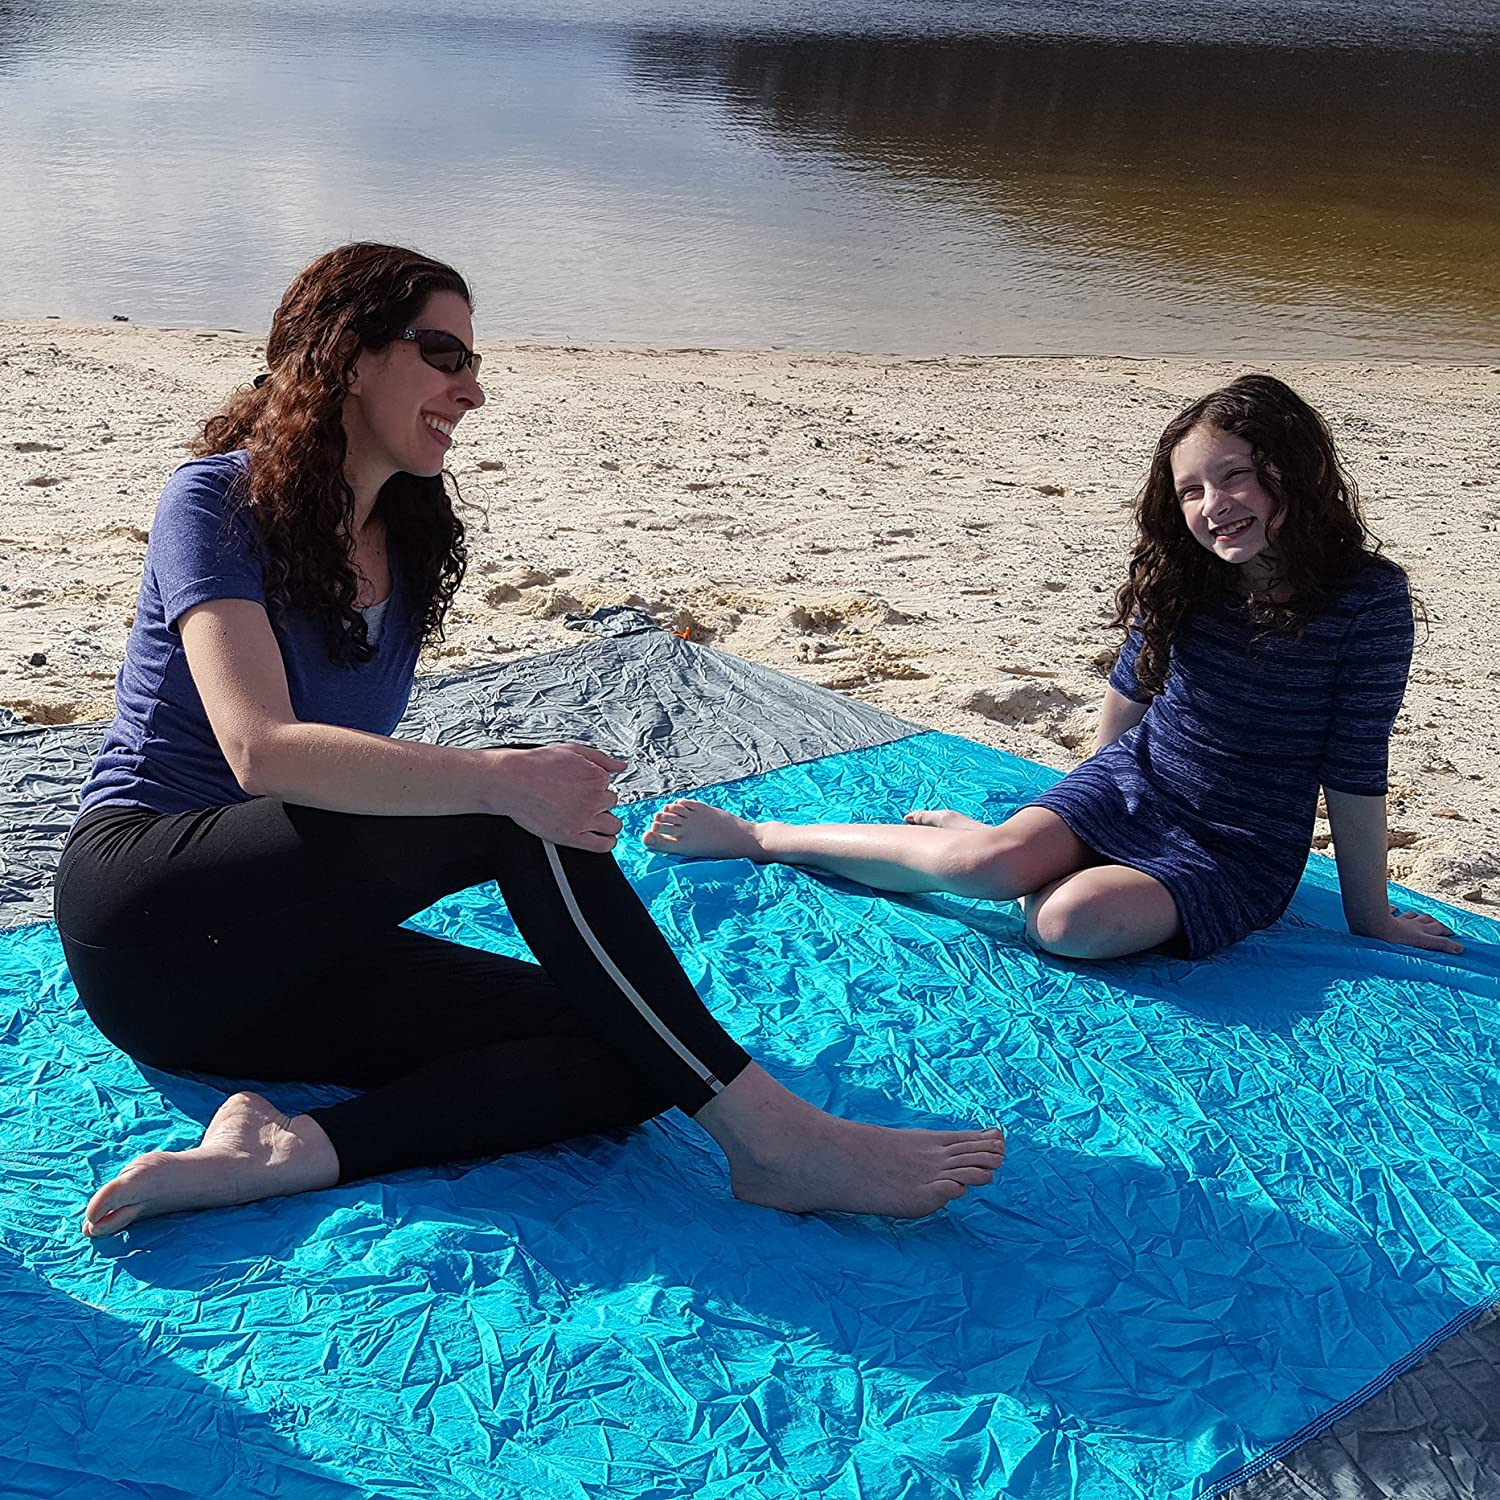 Anchor Loops /& Quality Stakes Valuables Storage Holds 7 Adults Best Sandproof Large Beach Blanket 5 Sand Pockets Quick Dry Durable 210T Nylon Huge 9 x 10 Oversized Beach Blanket